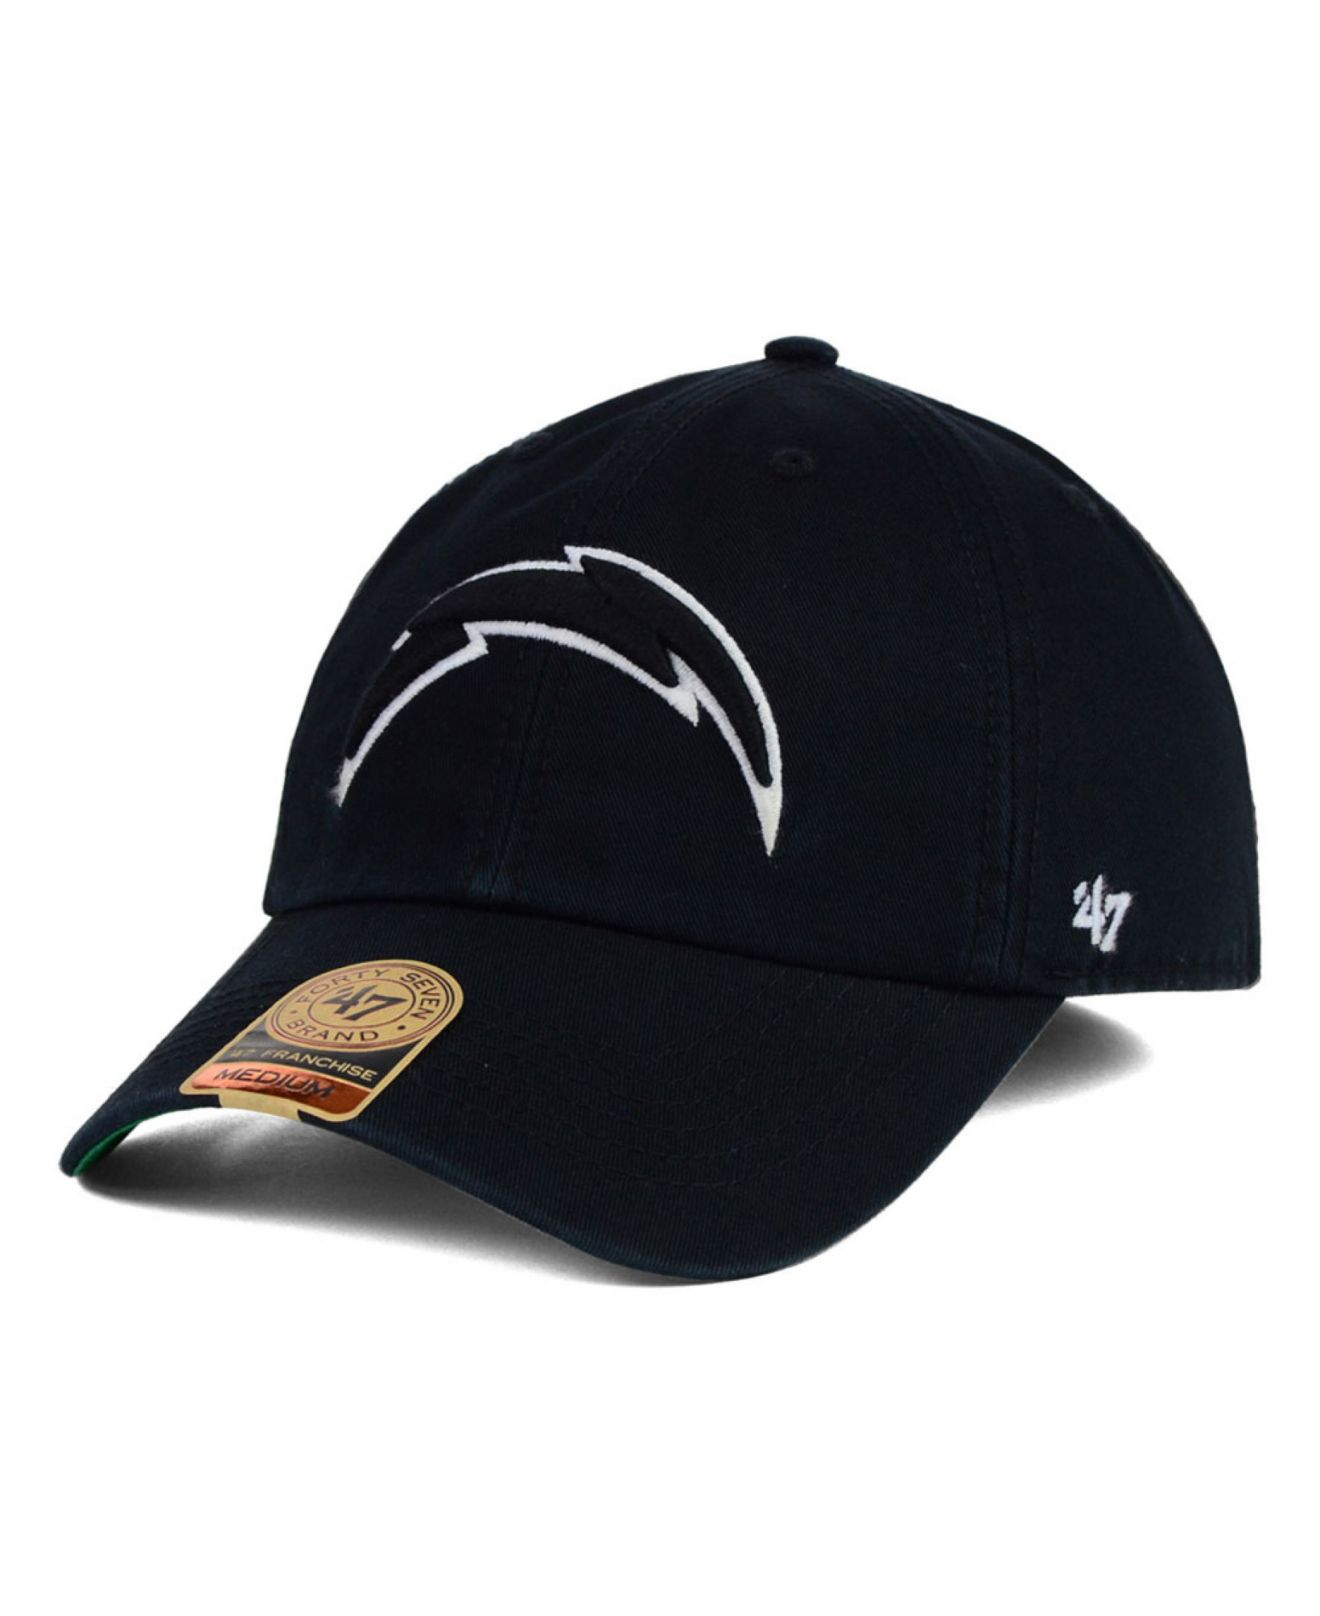 Lyst 47 Brand San Diego Chargers Black White Franchise